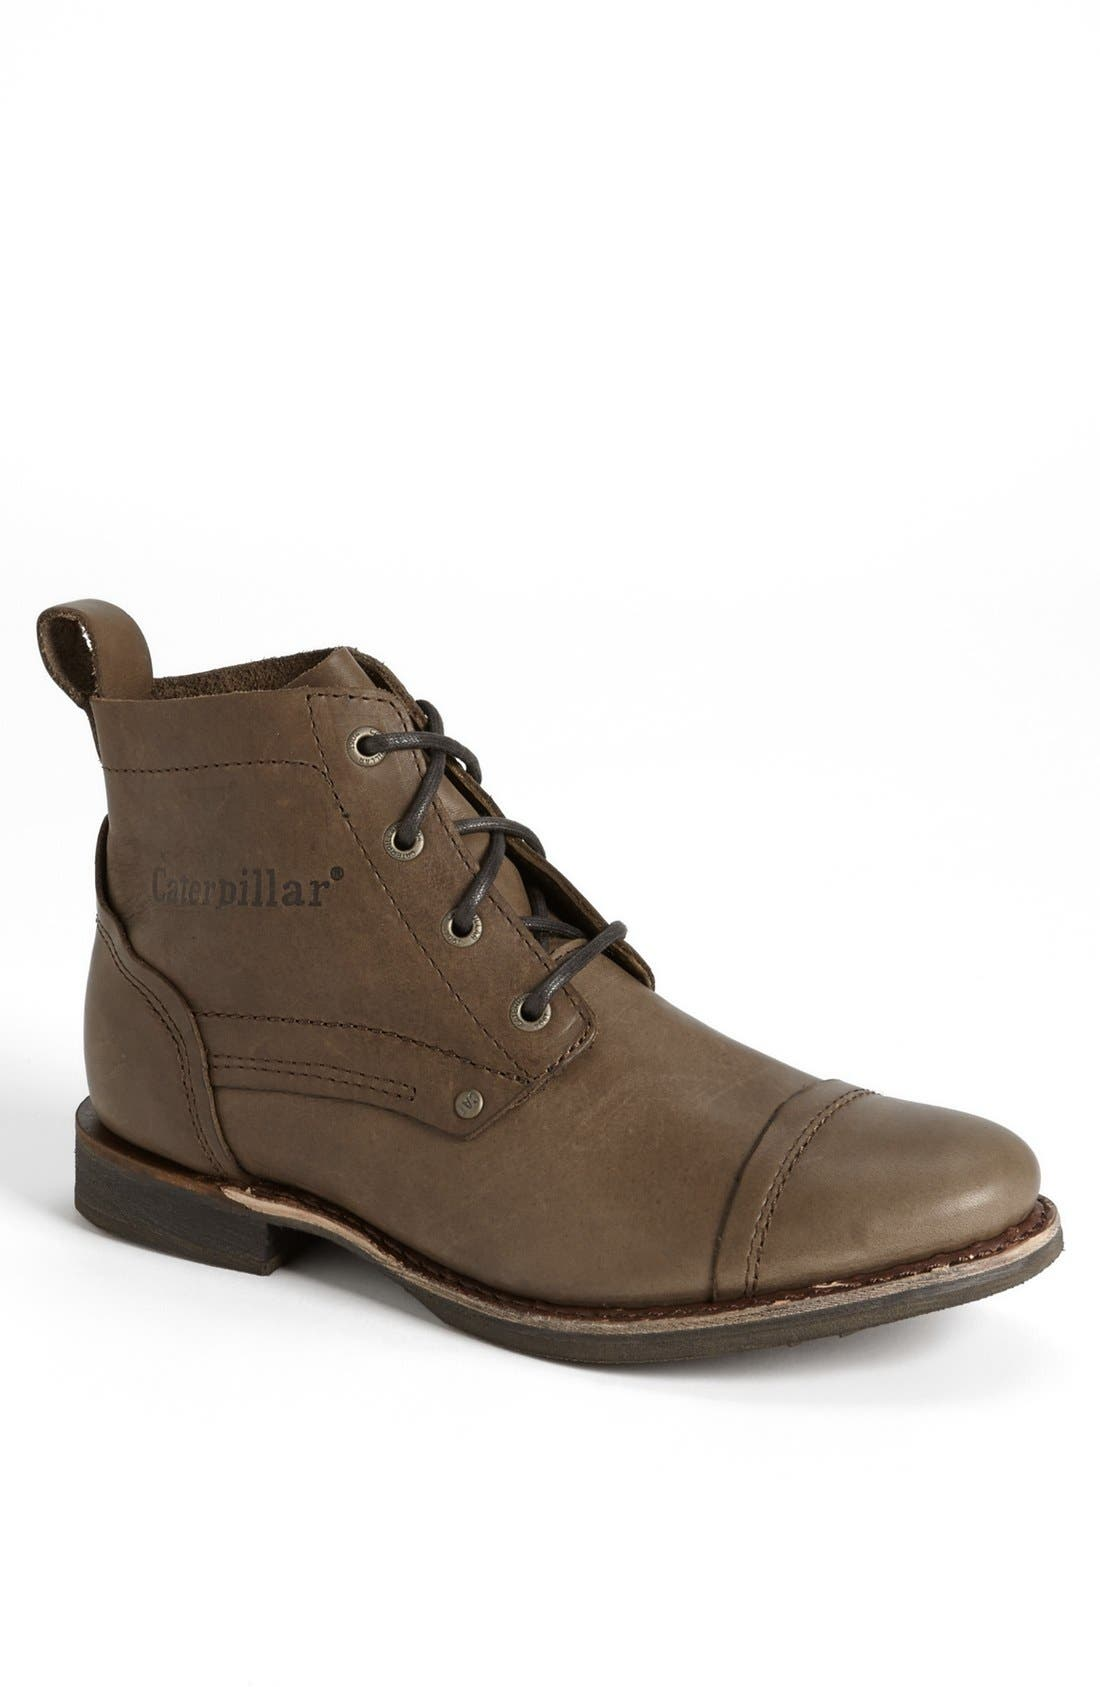 Main Image - Caterpillar 'Morrison' Cap Toe Boot (Men)